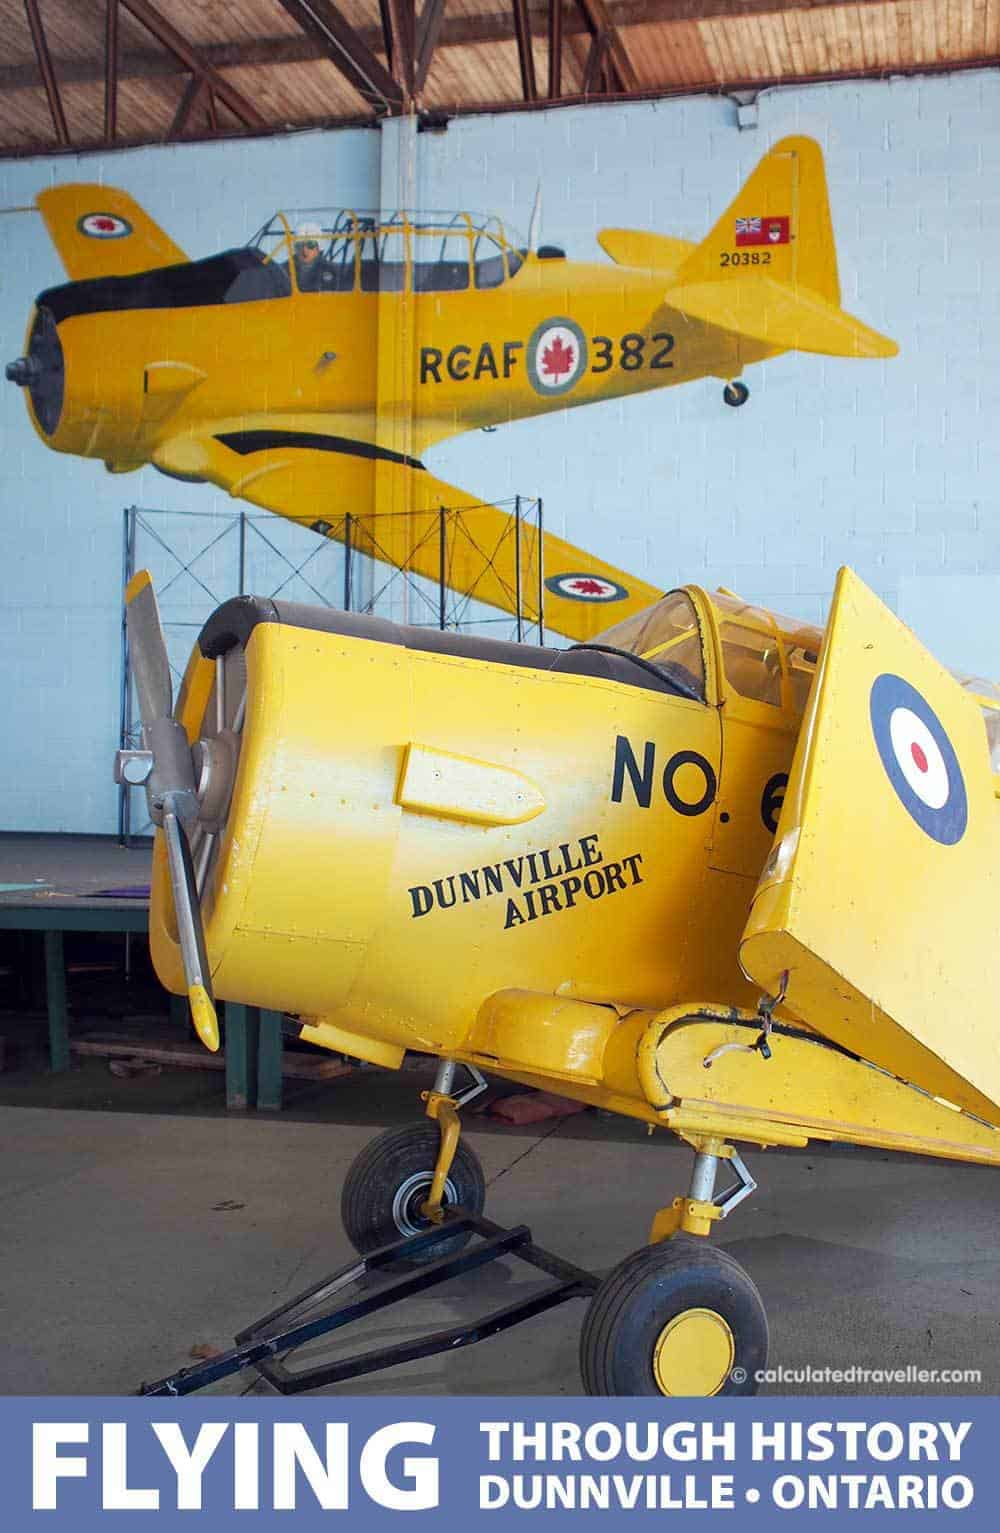 Discovering Flyers and History in Dunnville Ontario - No 6. RCAF  Dunnville Museum by Calculated Traveller Magazine